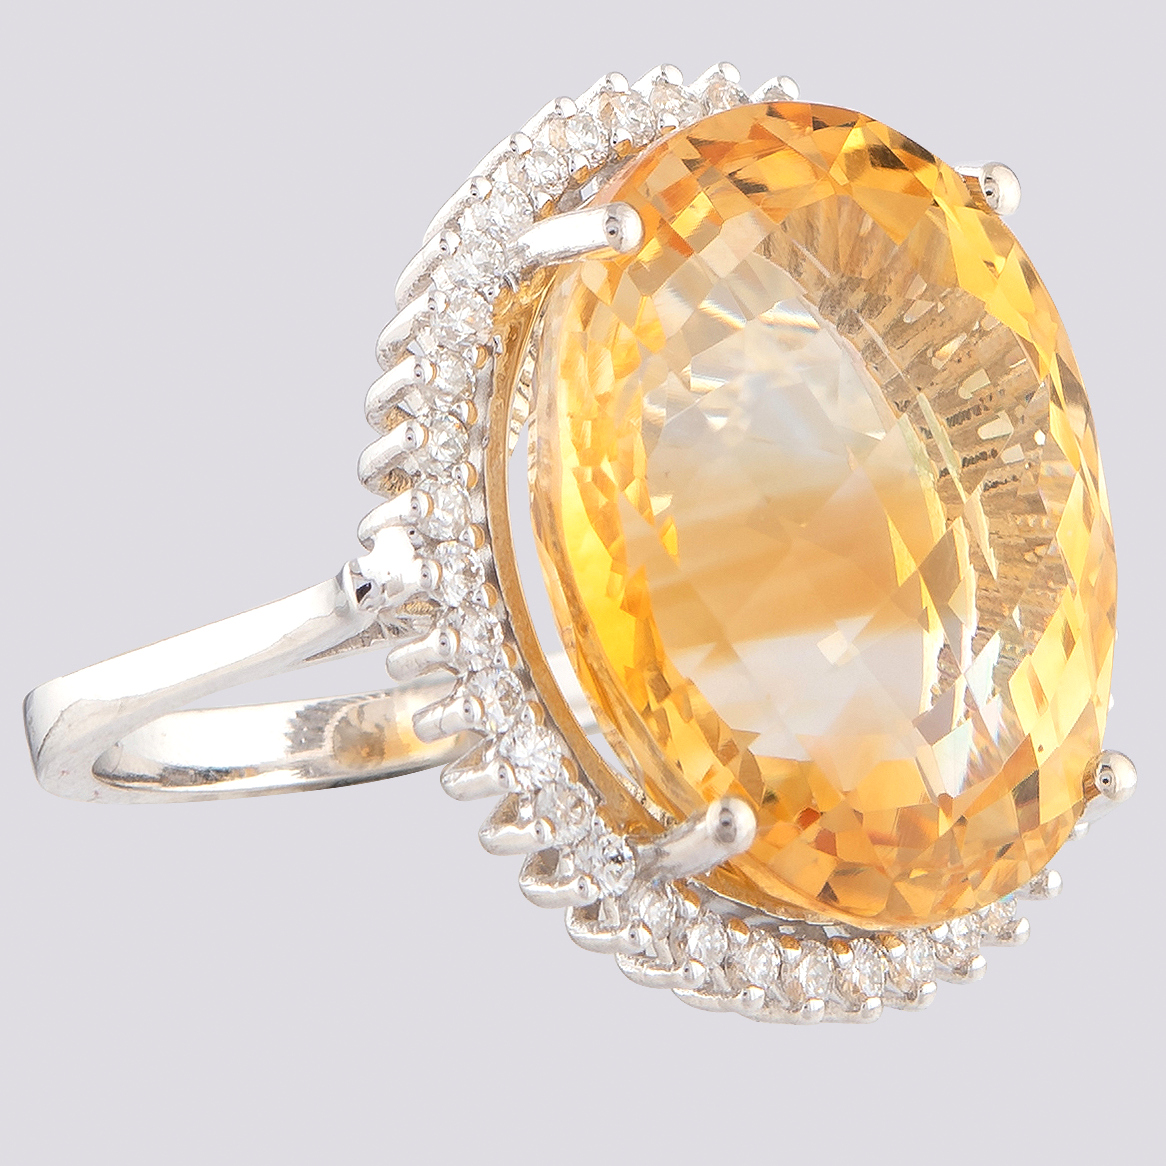 14K White Gold Large Cluster Ring 17,90 Ct. Citrine - 0,55 Ct. Diamond - Image 3 of 4